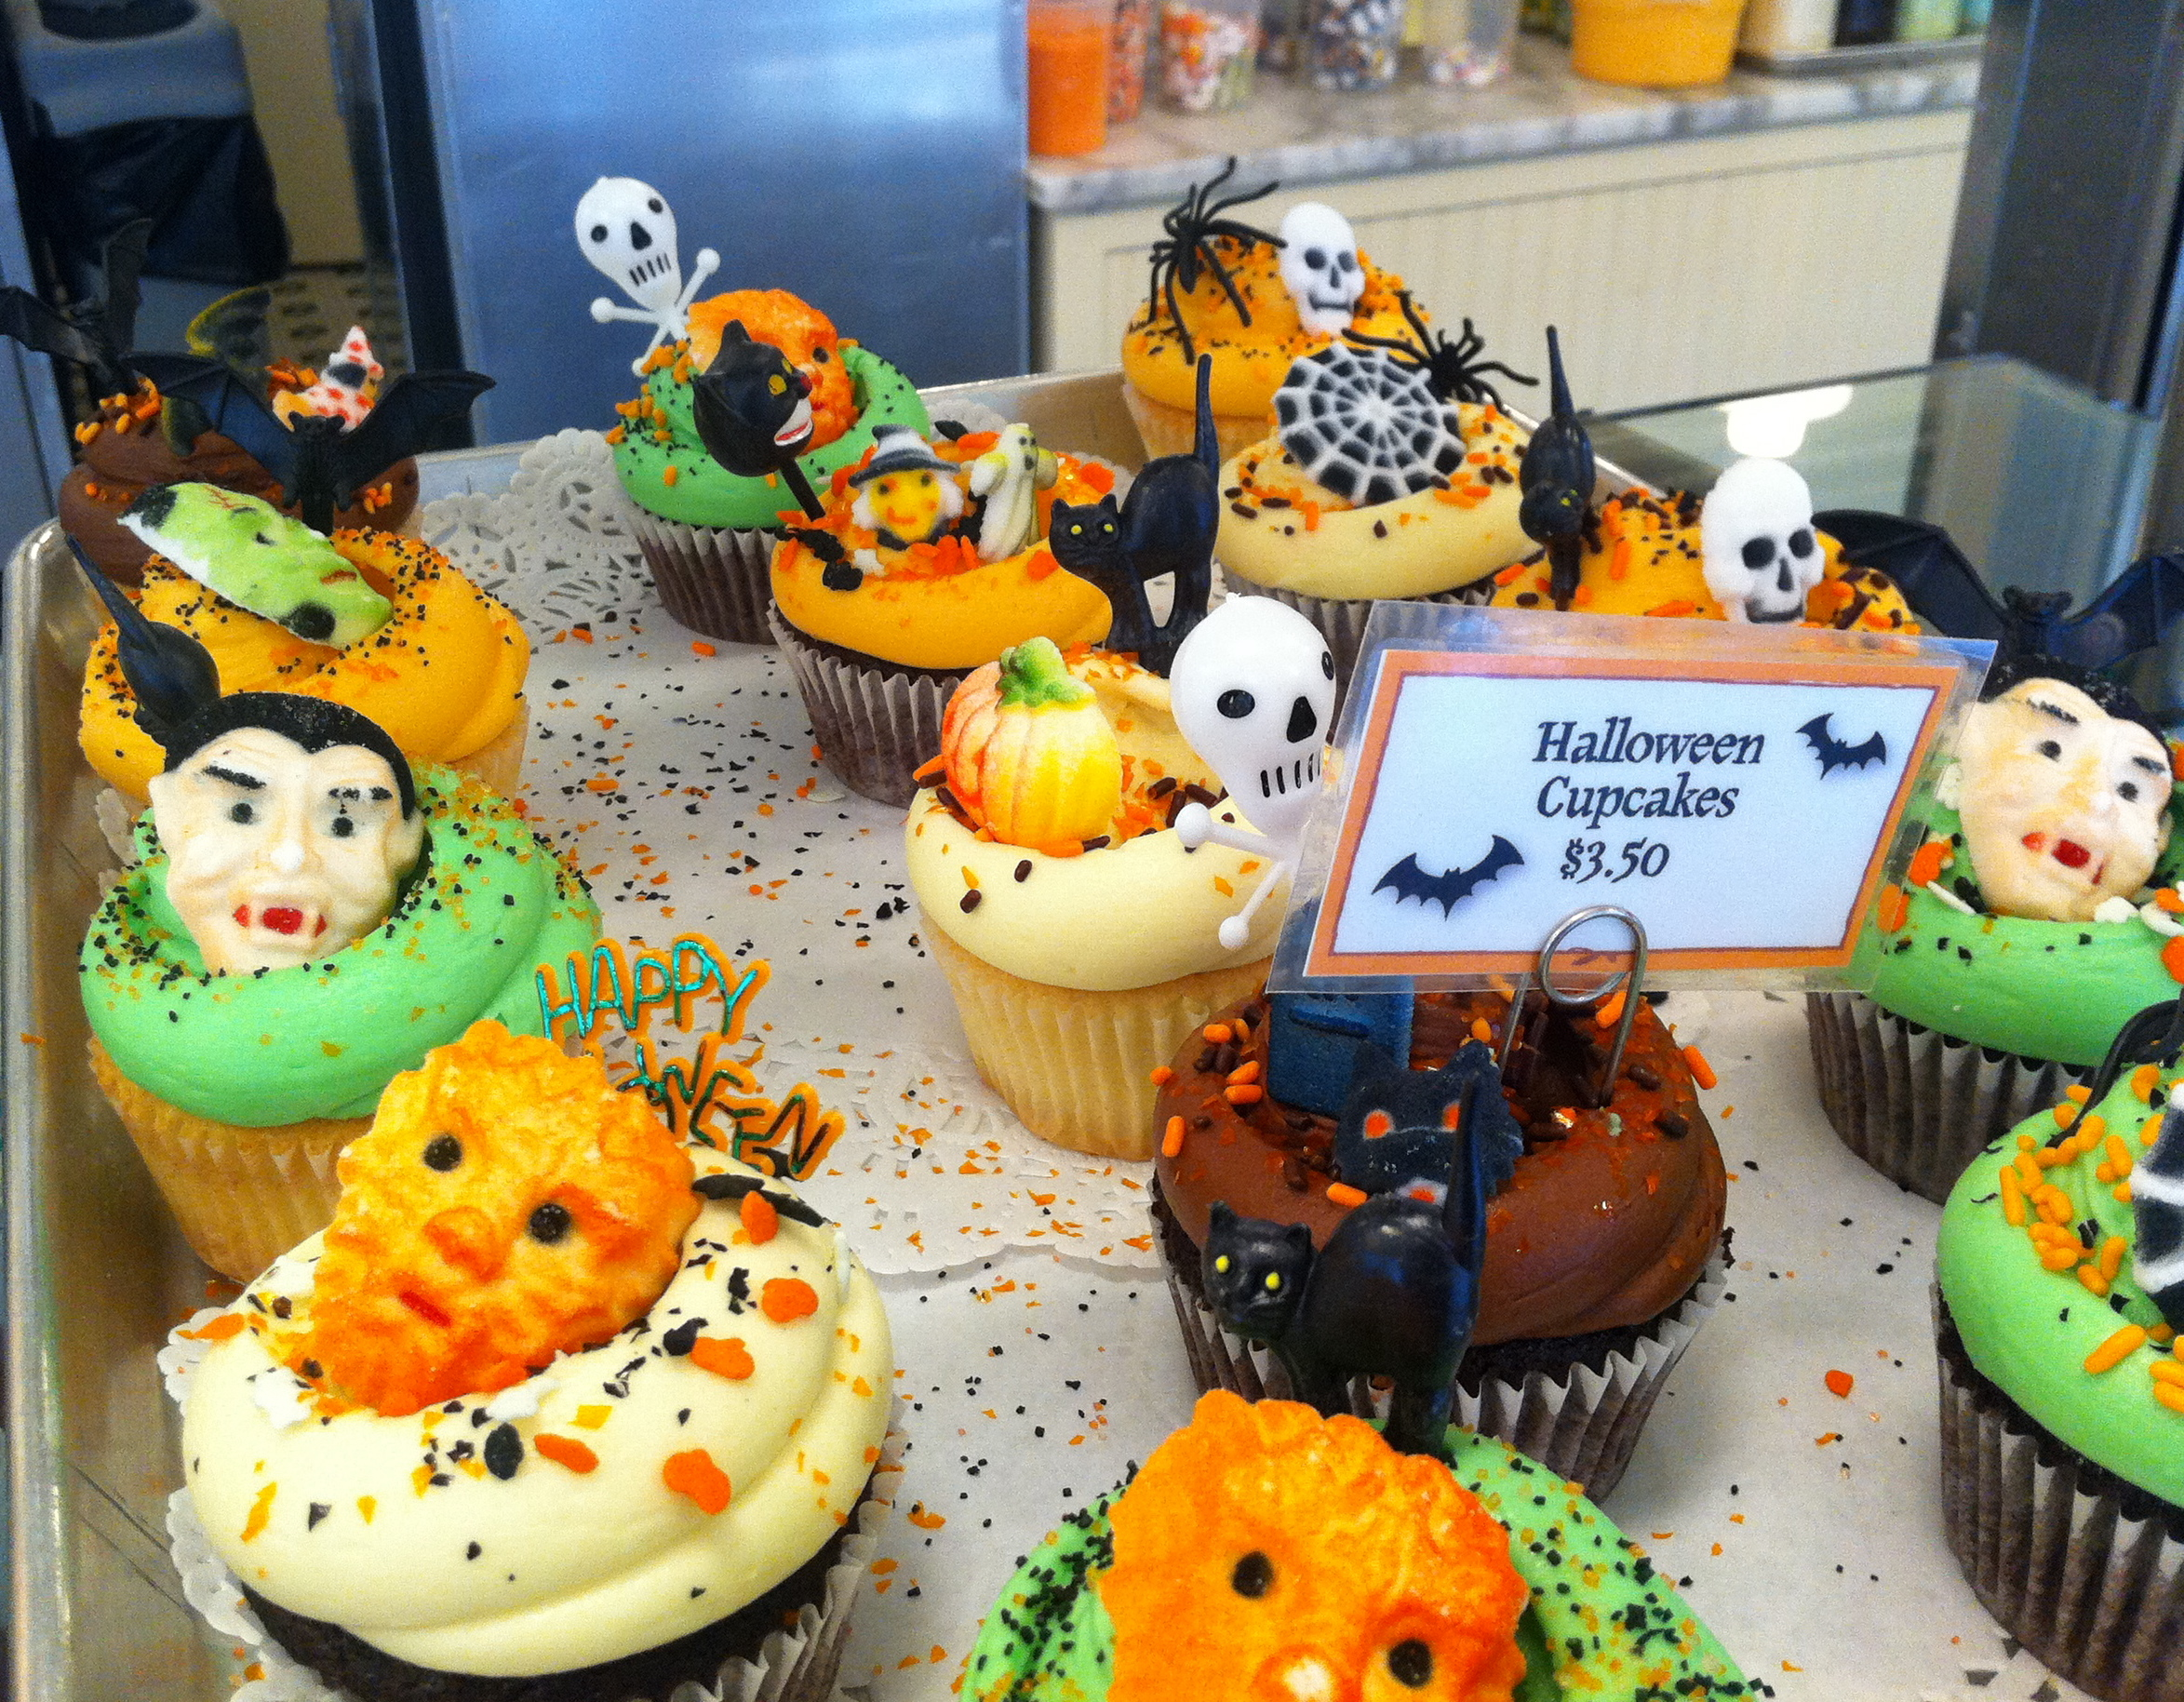 Halloween Cupcakes and Decorations at Magnolia Bakery